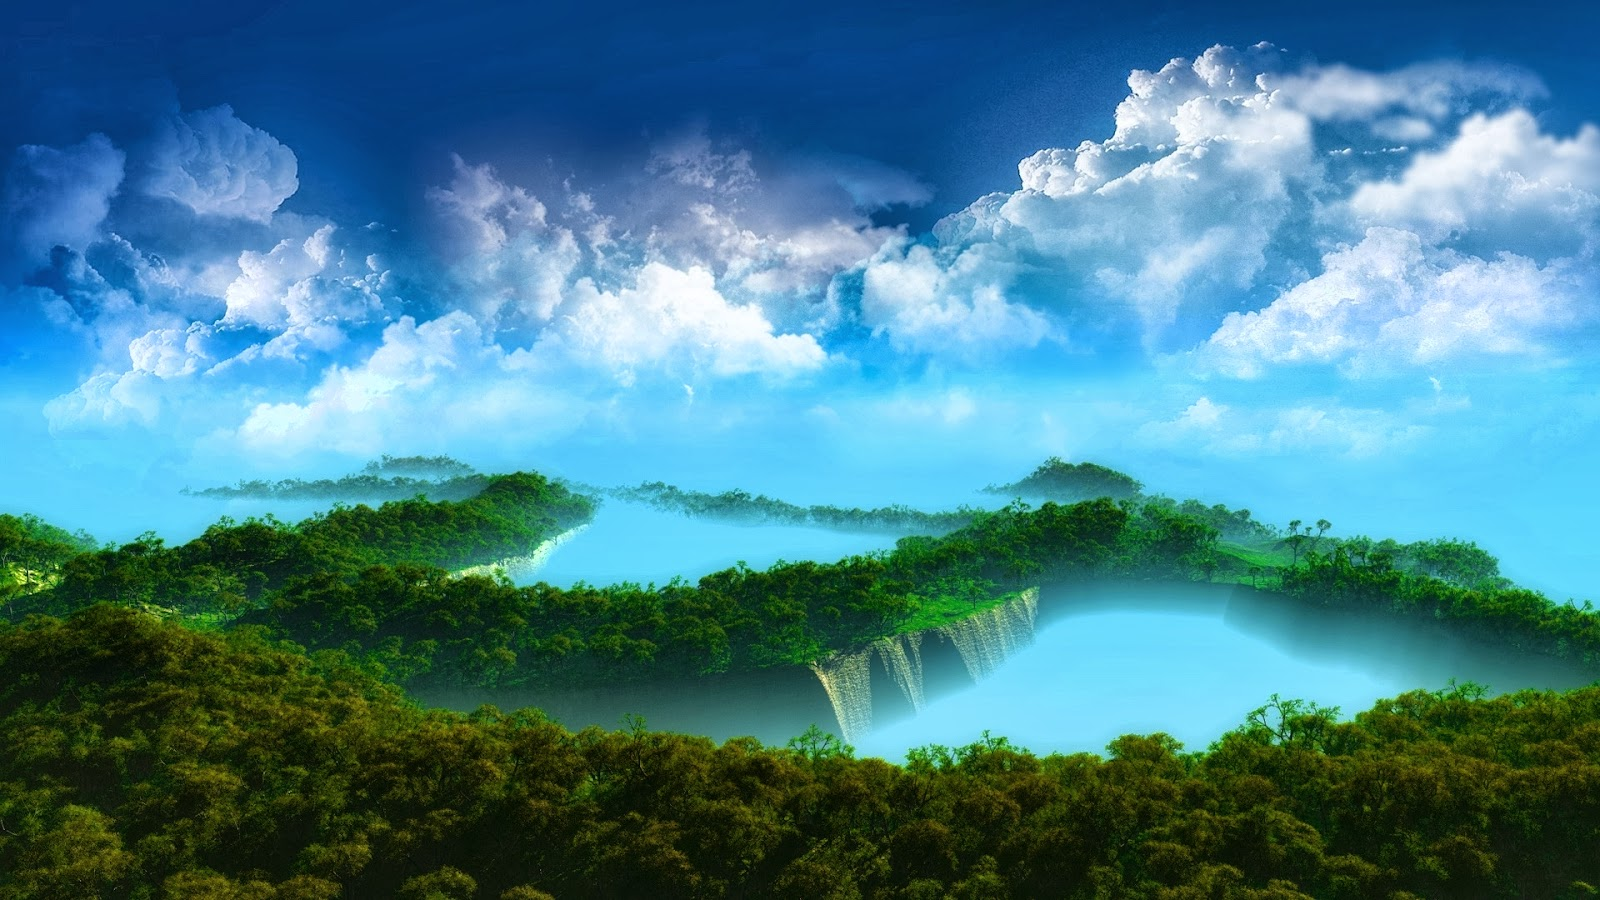 Full HD Nature Wallpapers Free Download For Laptop PC Desktop Background